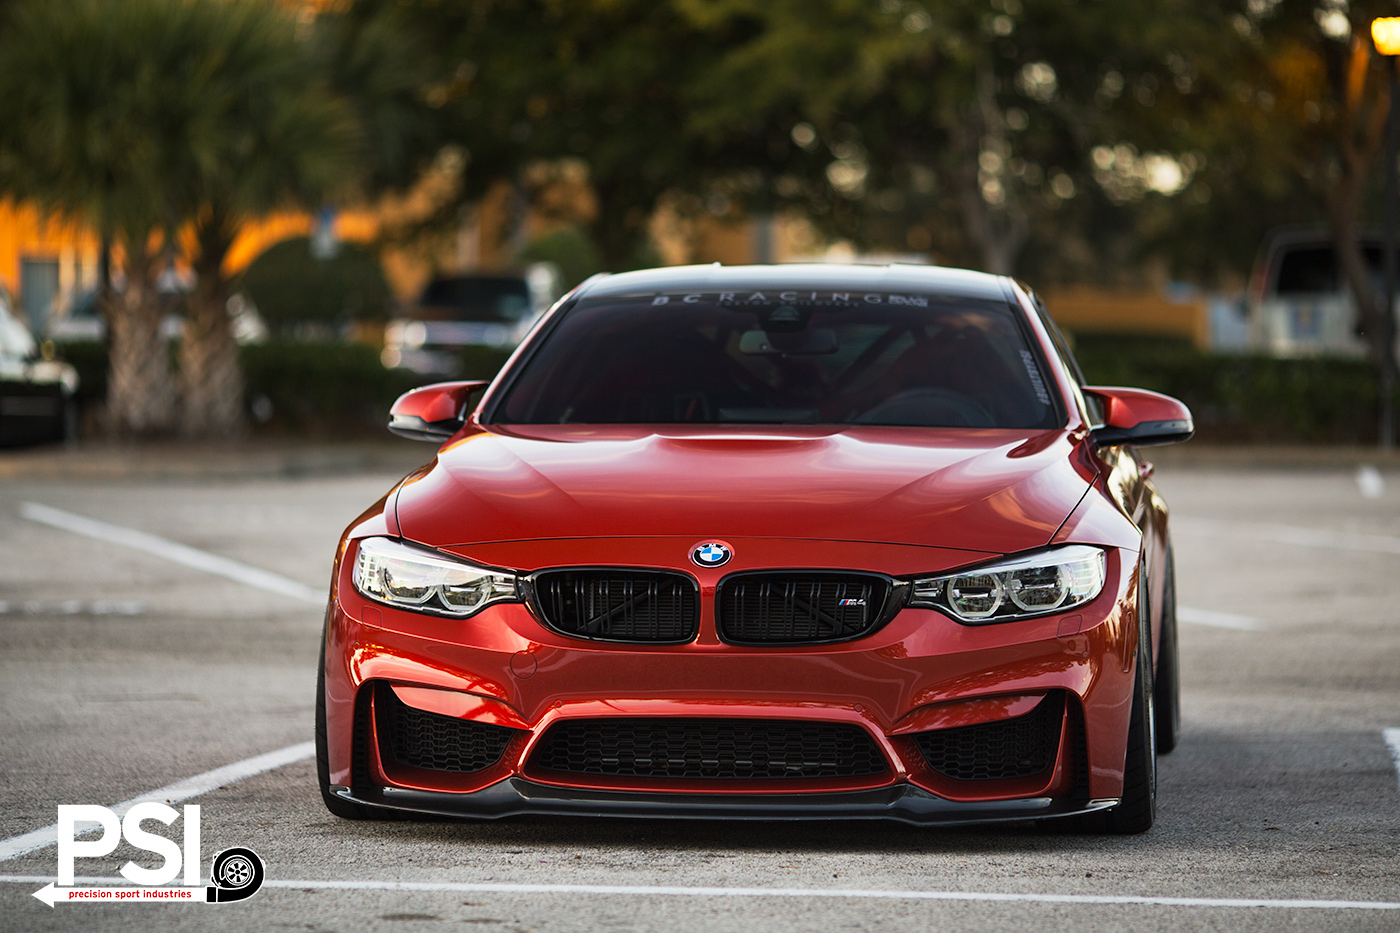 Duel Pursuits Bmw F80 M3 Vs F82 M4